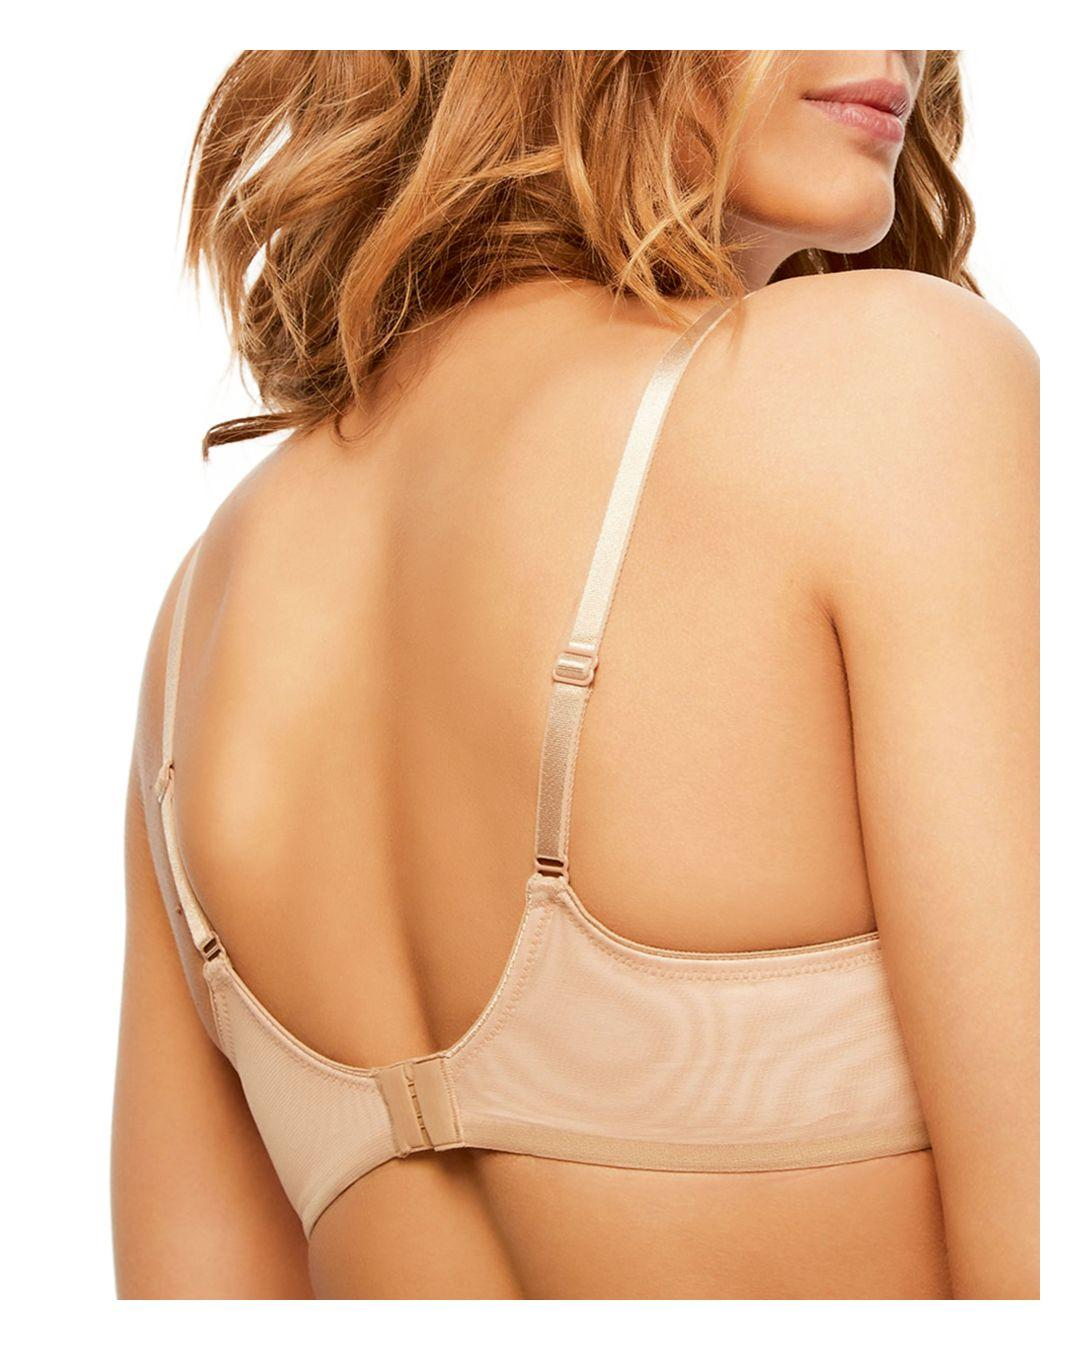 d76772eeb8d Lyst - Chantelle Revele Moi Perfect Fit Underwire Bra in Natural